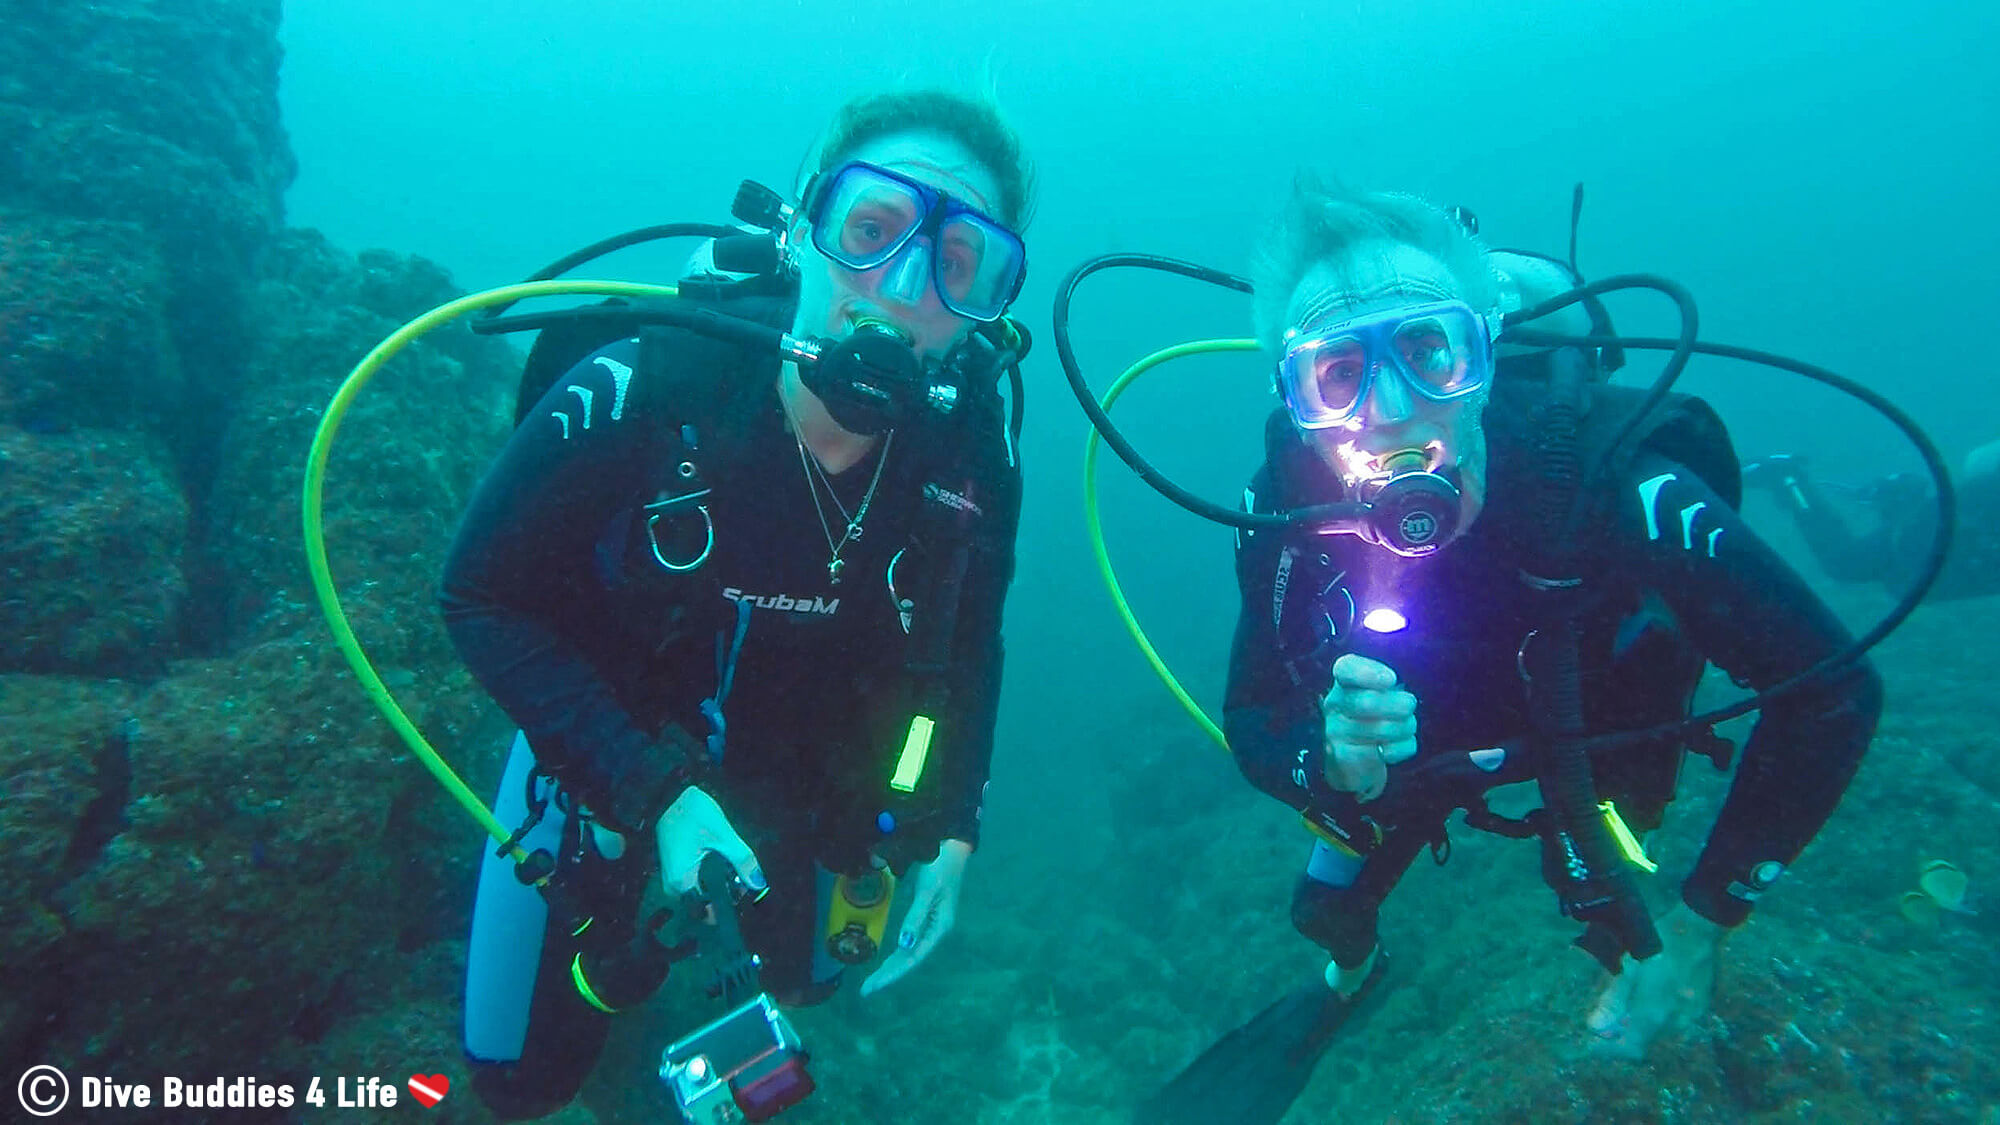 Ali And Dad Scuba Diving The Catalina Islands In Costa Rica, Central America